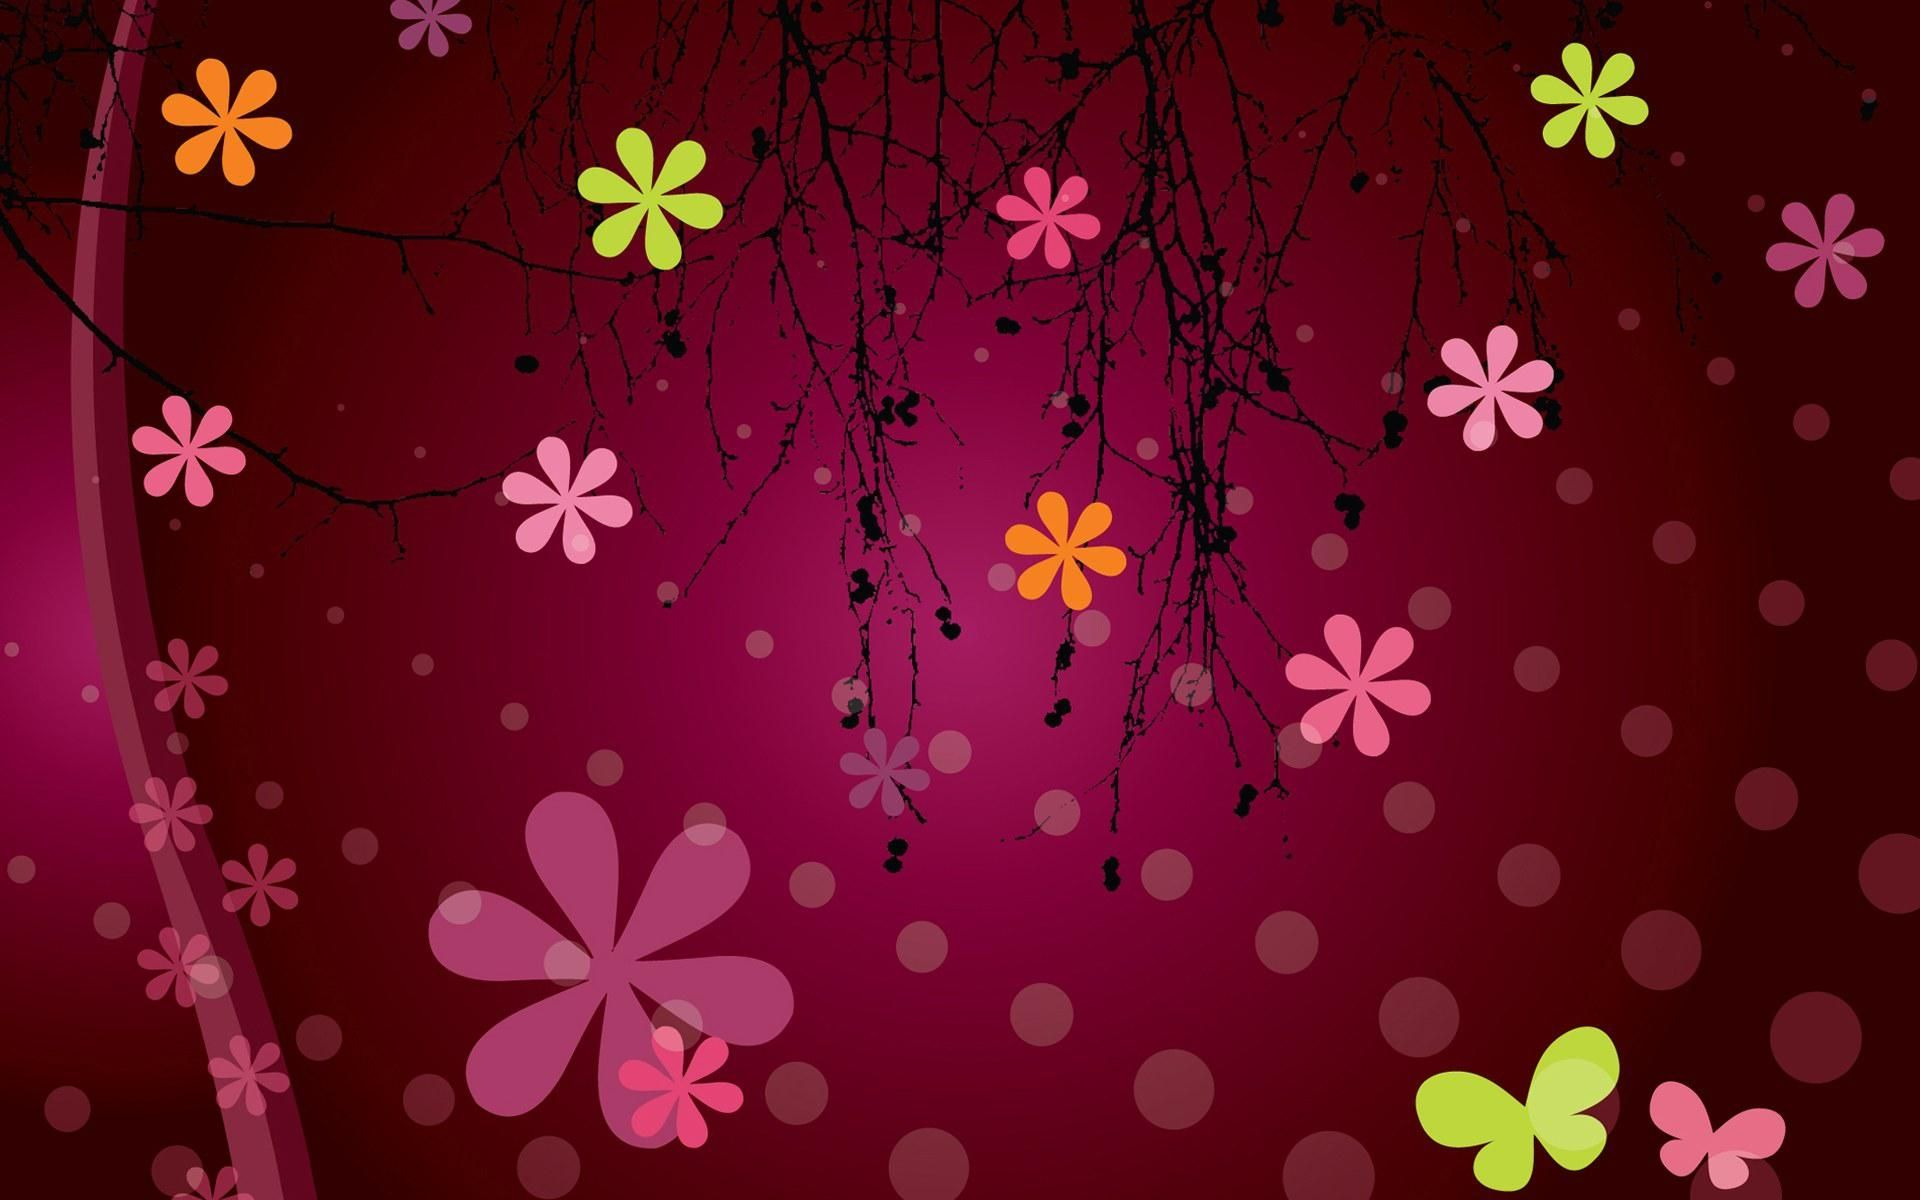 free girly wallpaper for desktop | Cute Girly Screensavers ... Girly Background